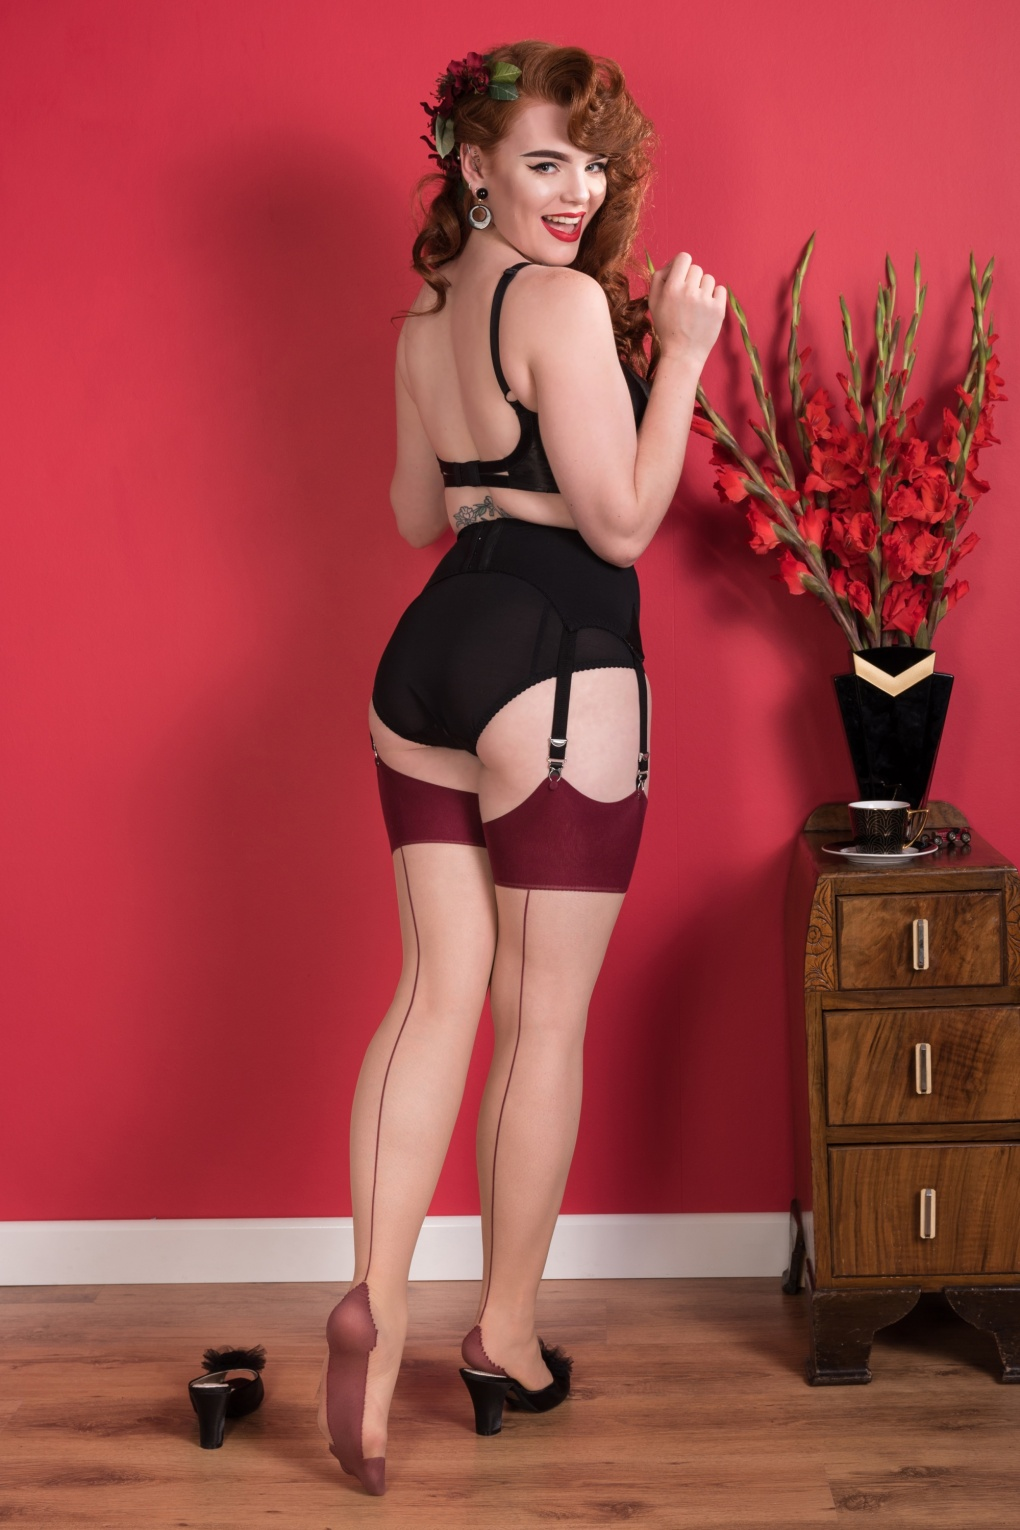 1950s Stockings and Nylons History & Shopping Guide 40s Retro Seamed Stockings in Burgundy Glamour £11.44 AT vintagedancer.com